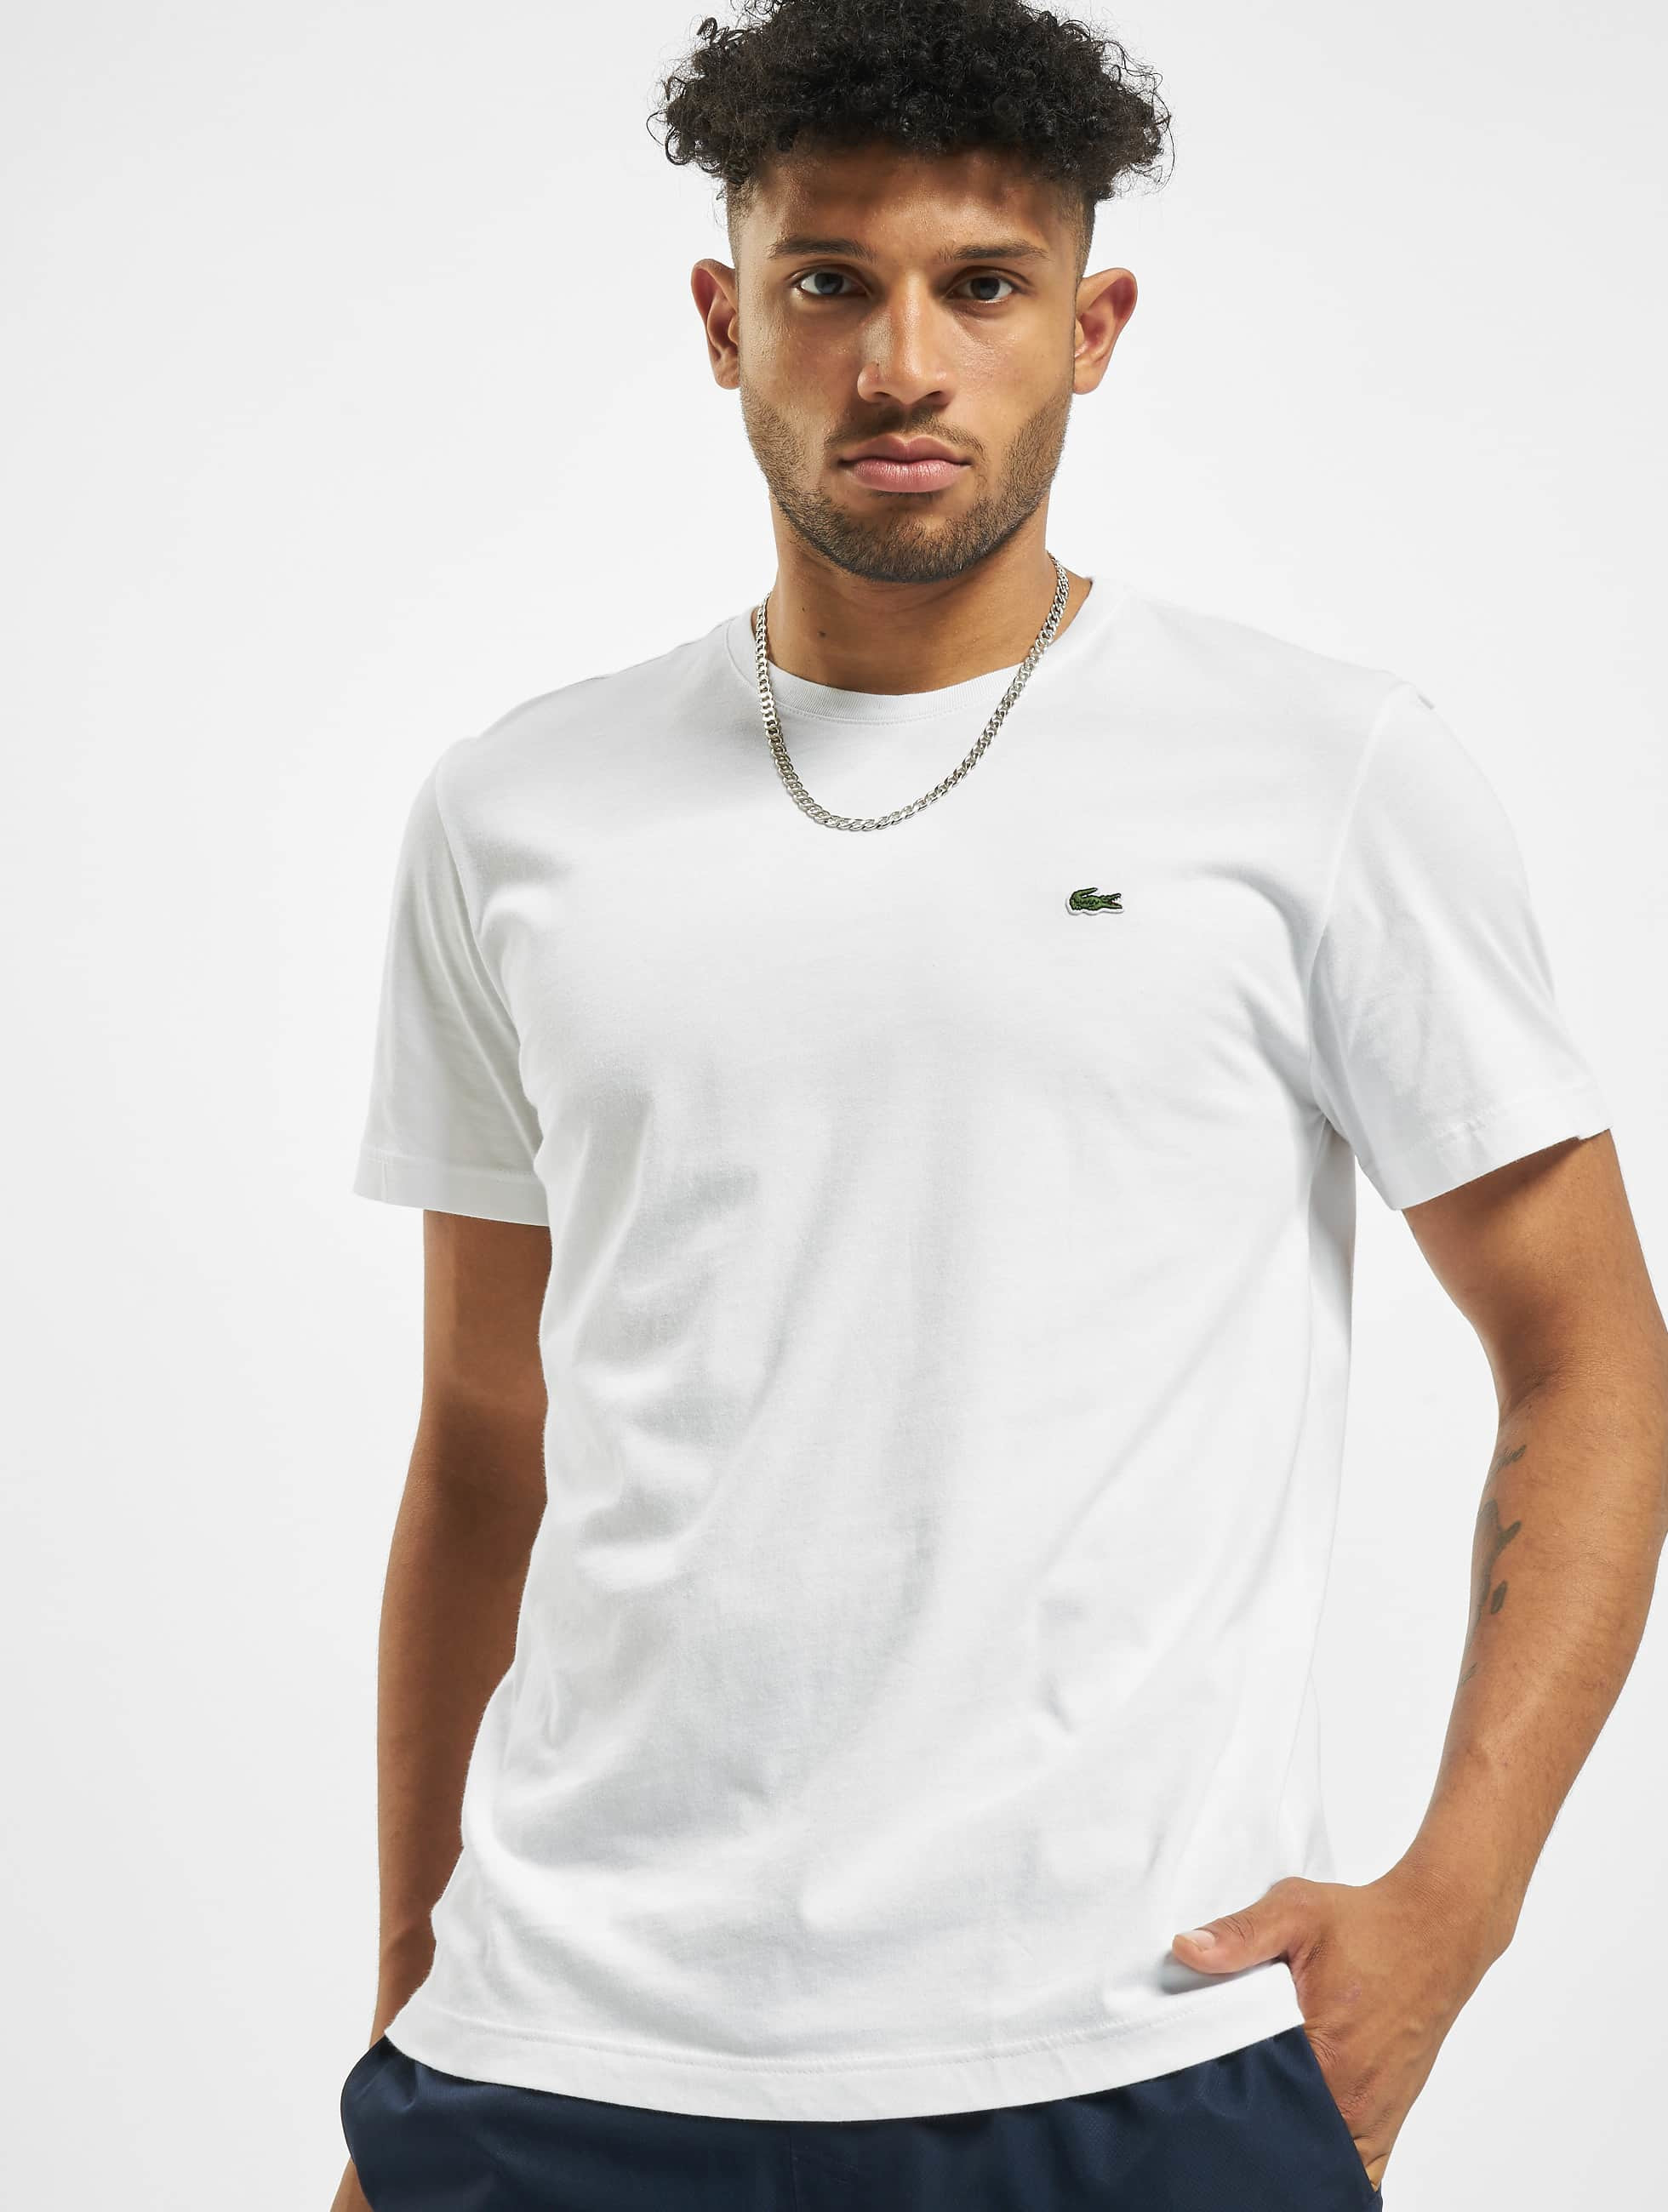 lacoste classic basic blanc homme t shirt lacoste. Black Bedroom Furniture Sets. Home Design Ideas